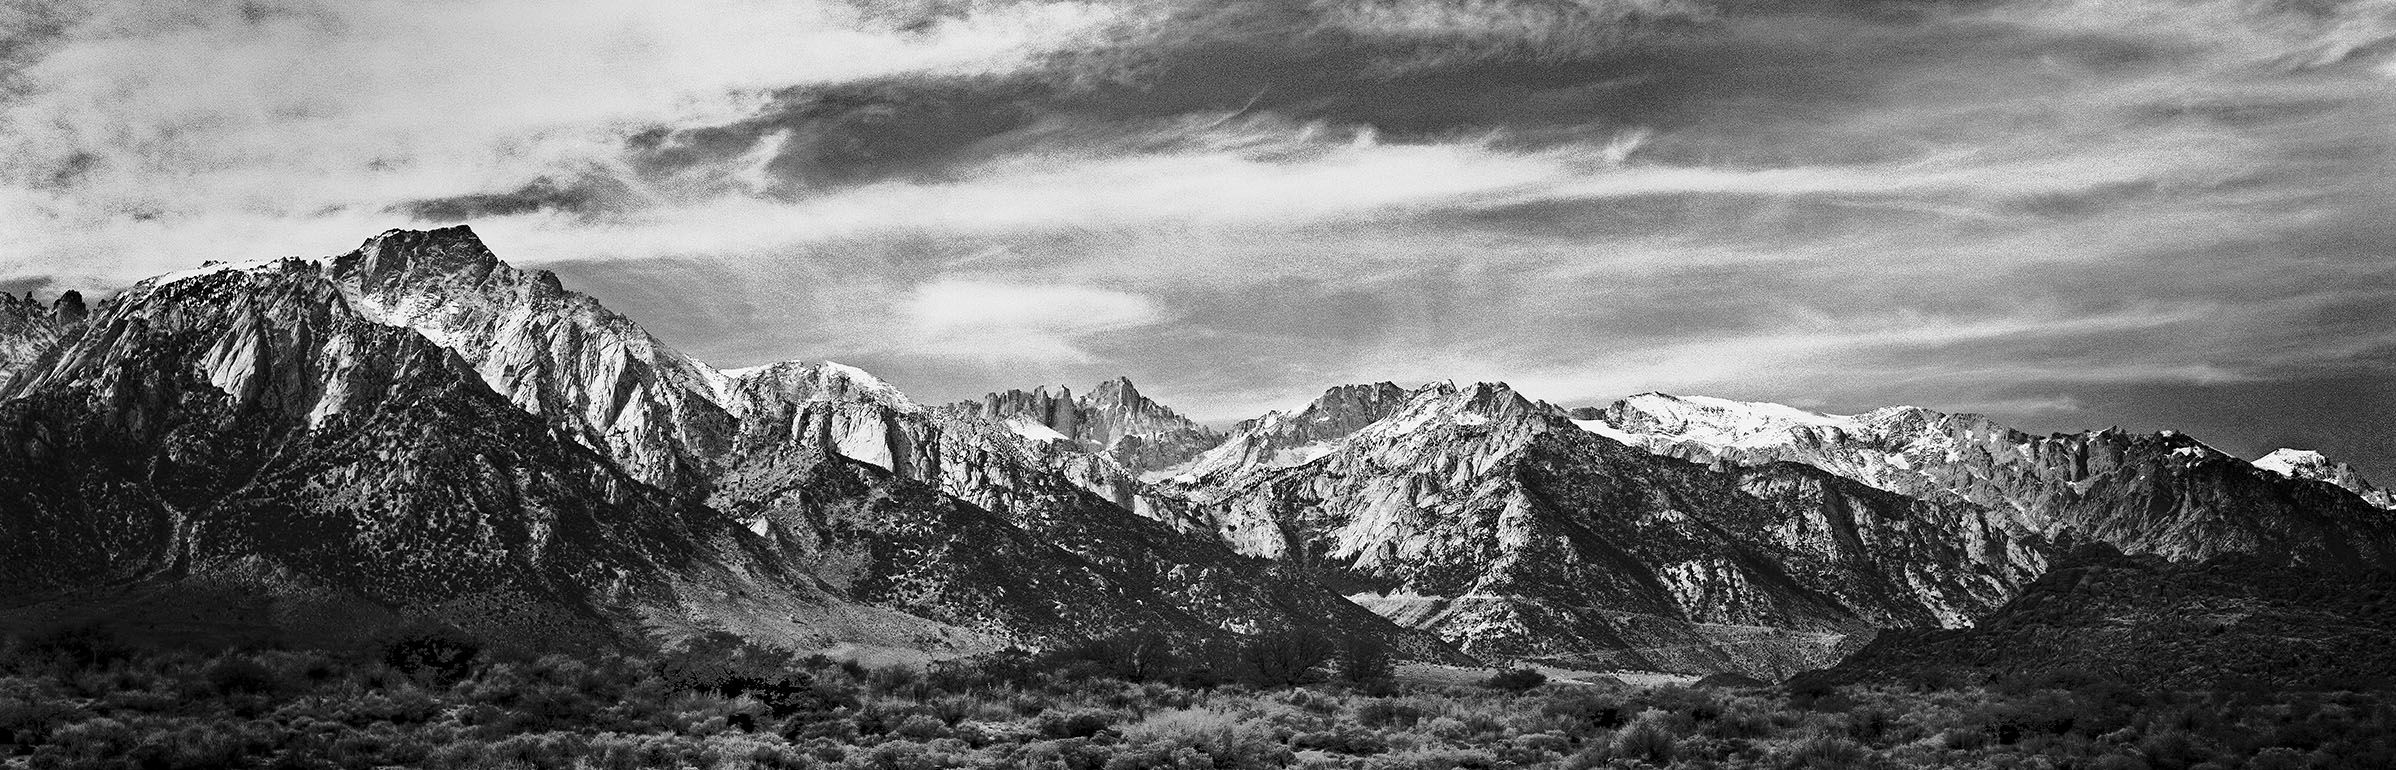 "Mount Whitney, Lone Pine, CA by Charles ""Chuck"" Farmer"